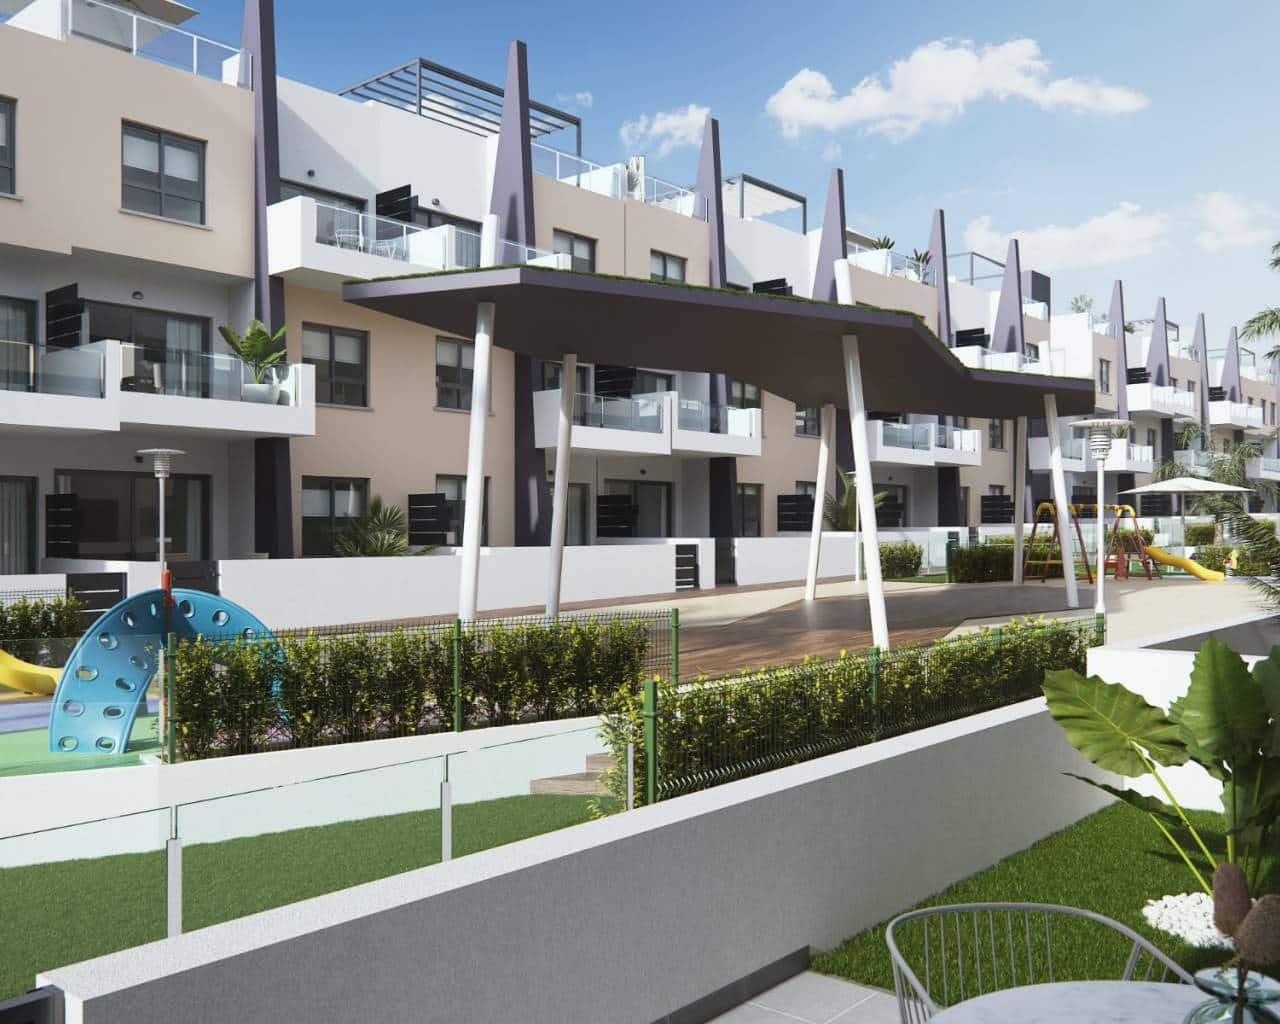 3 bedroom Apartment for sale in Mil Palmeras with pool garage - € 219,900 (Ref: 4301170)